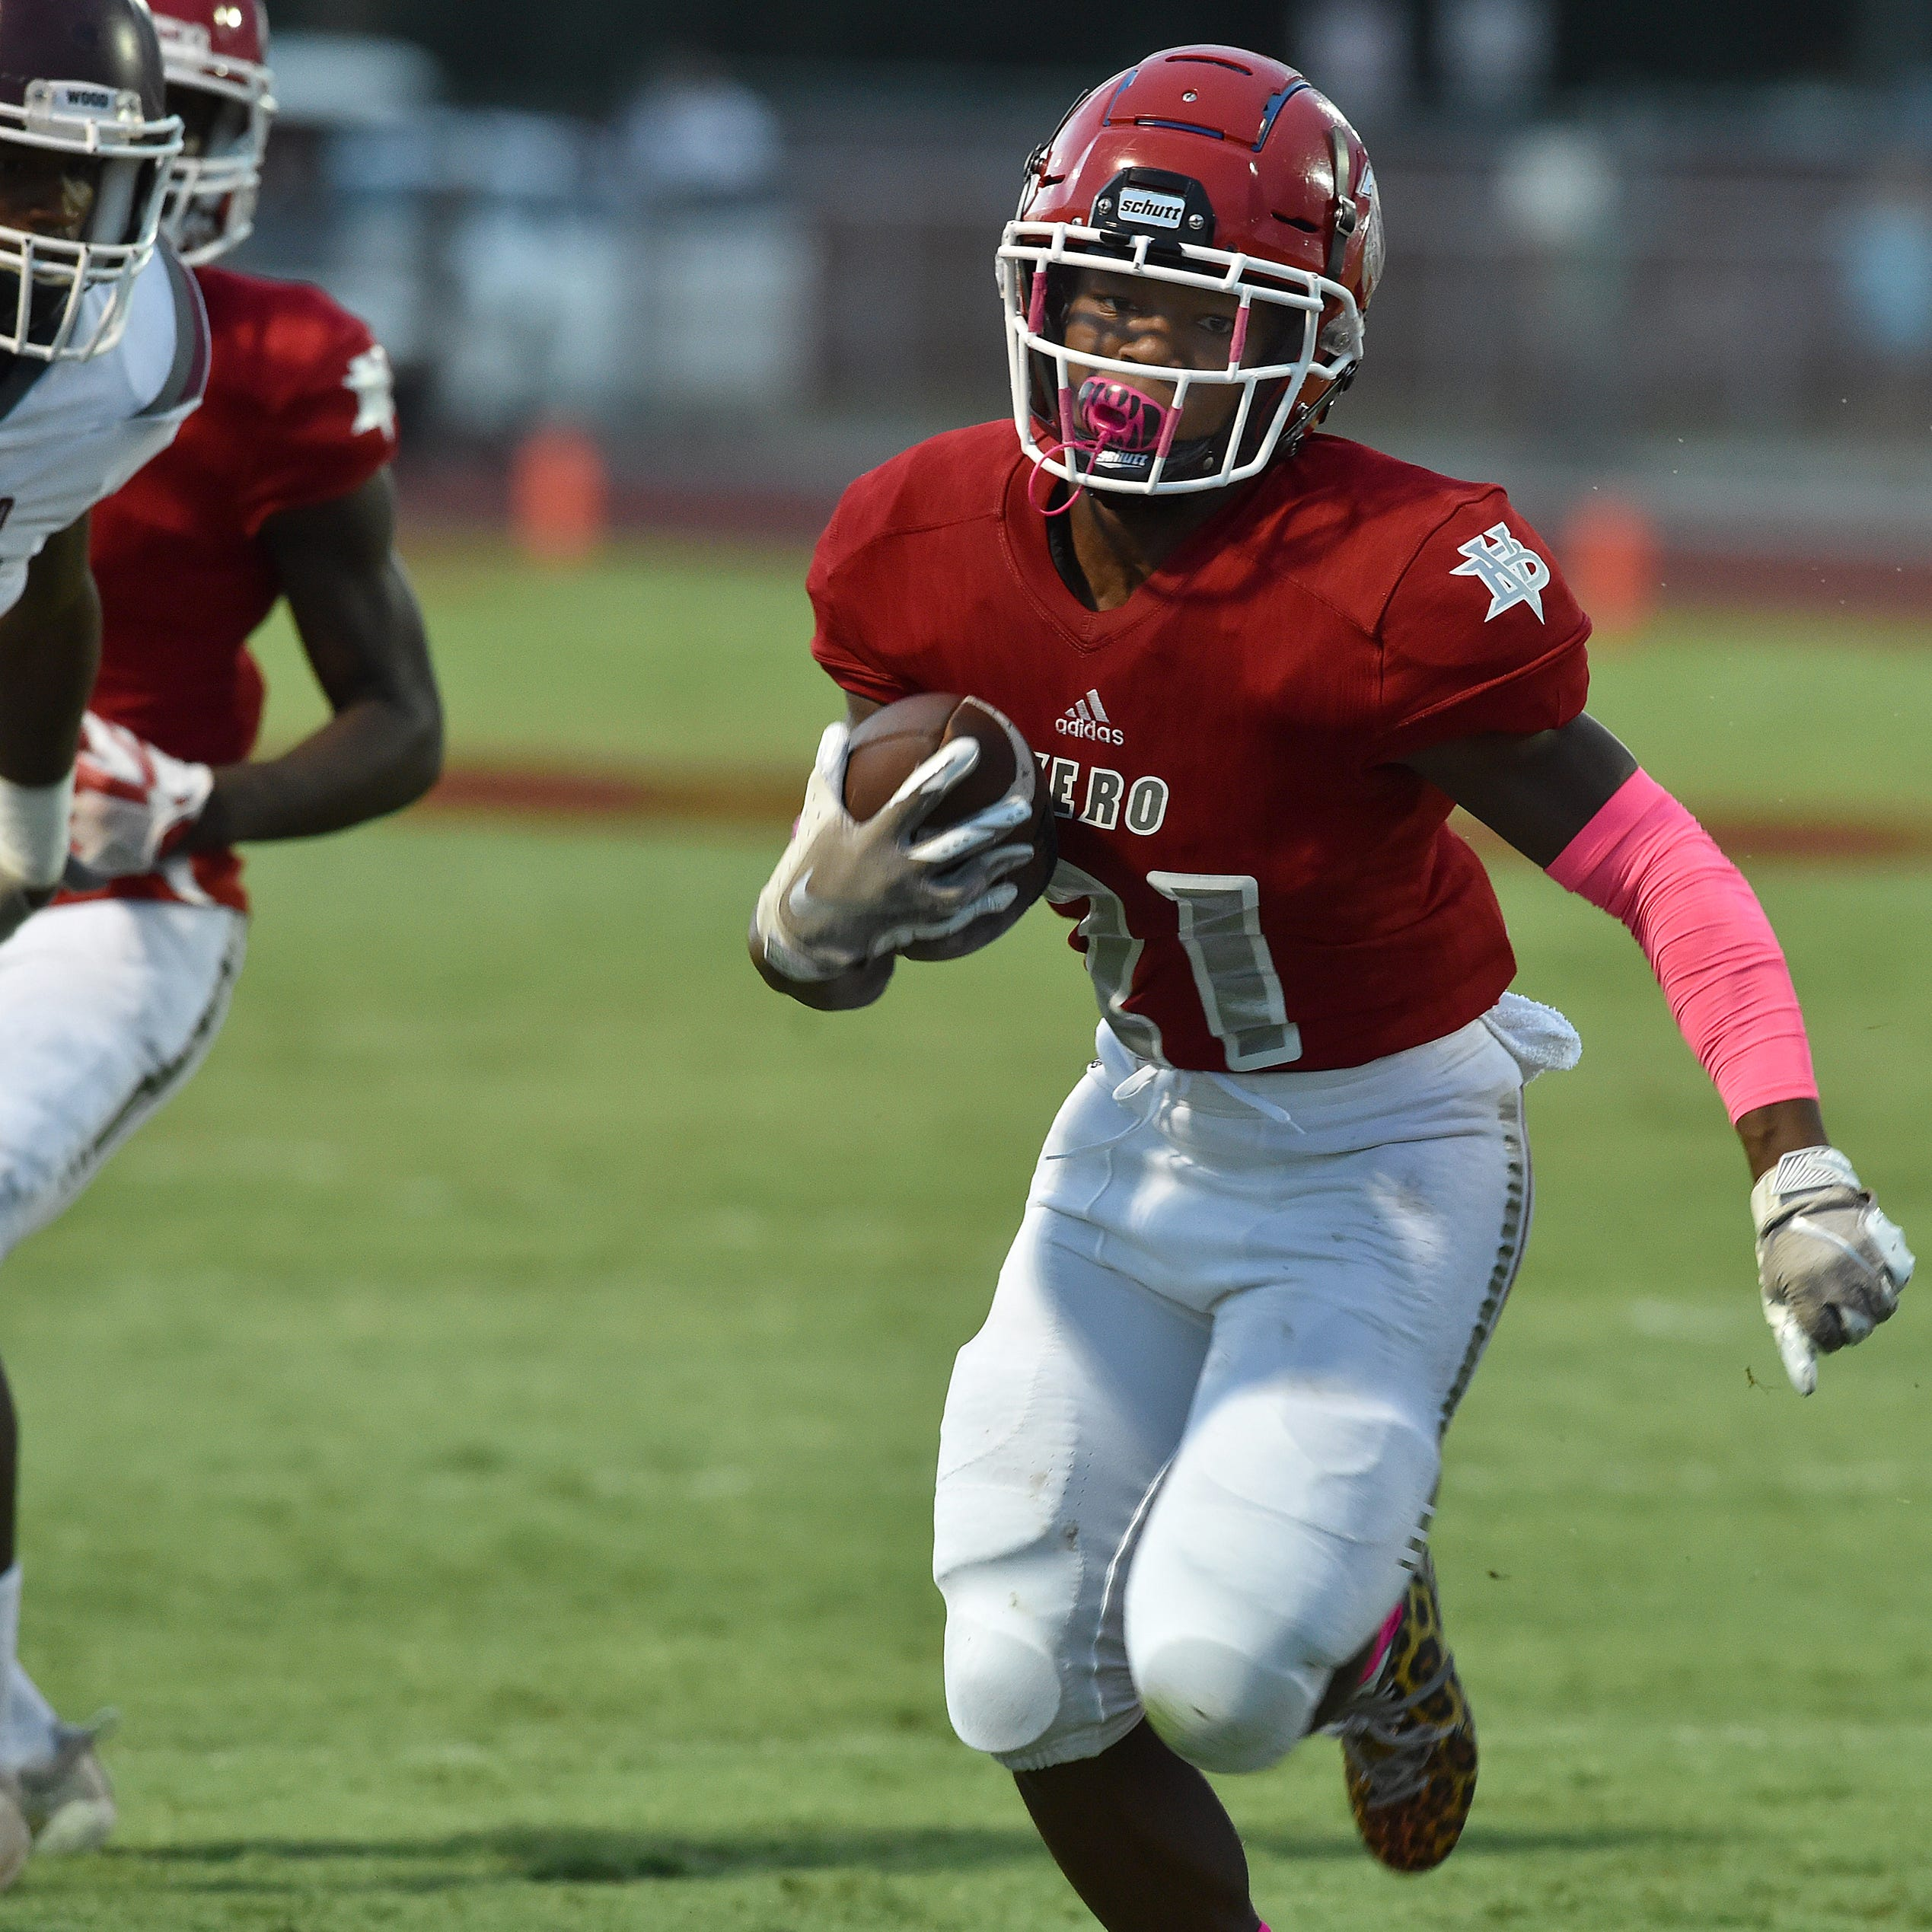 Week 7 roundup: Vero Beach makes it 50 straight regular-season wins